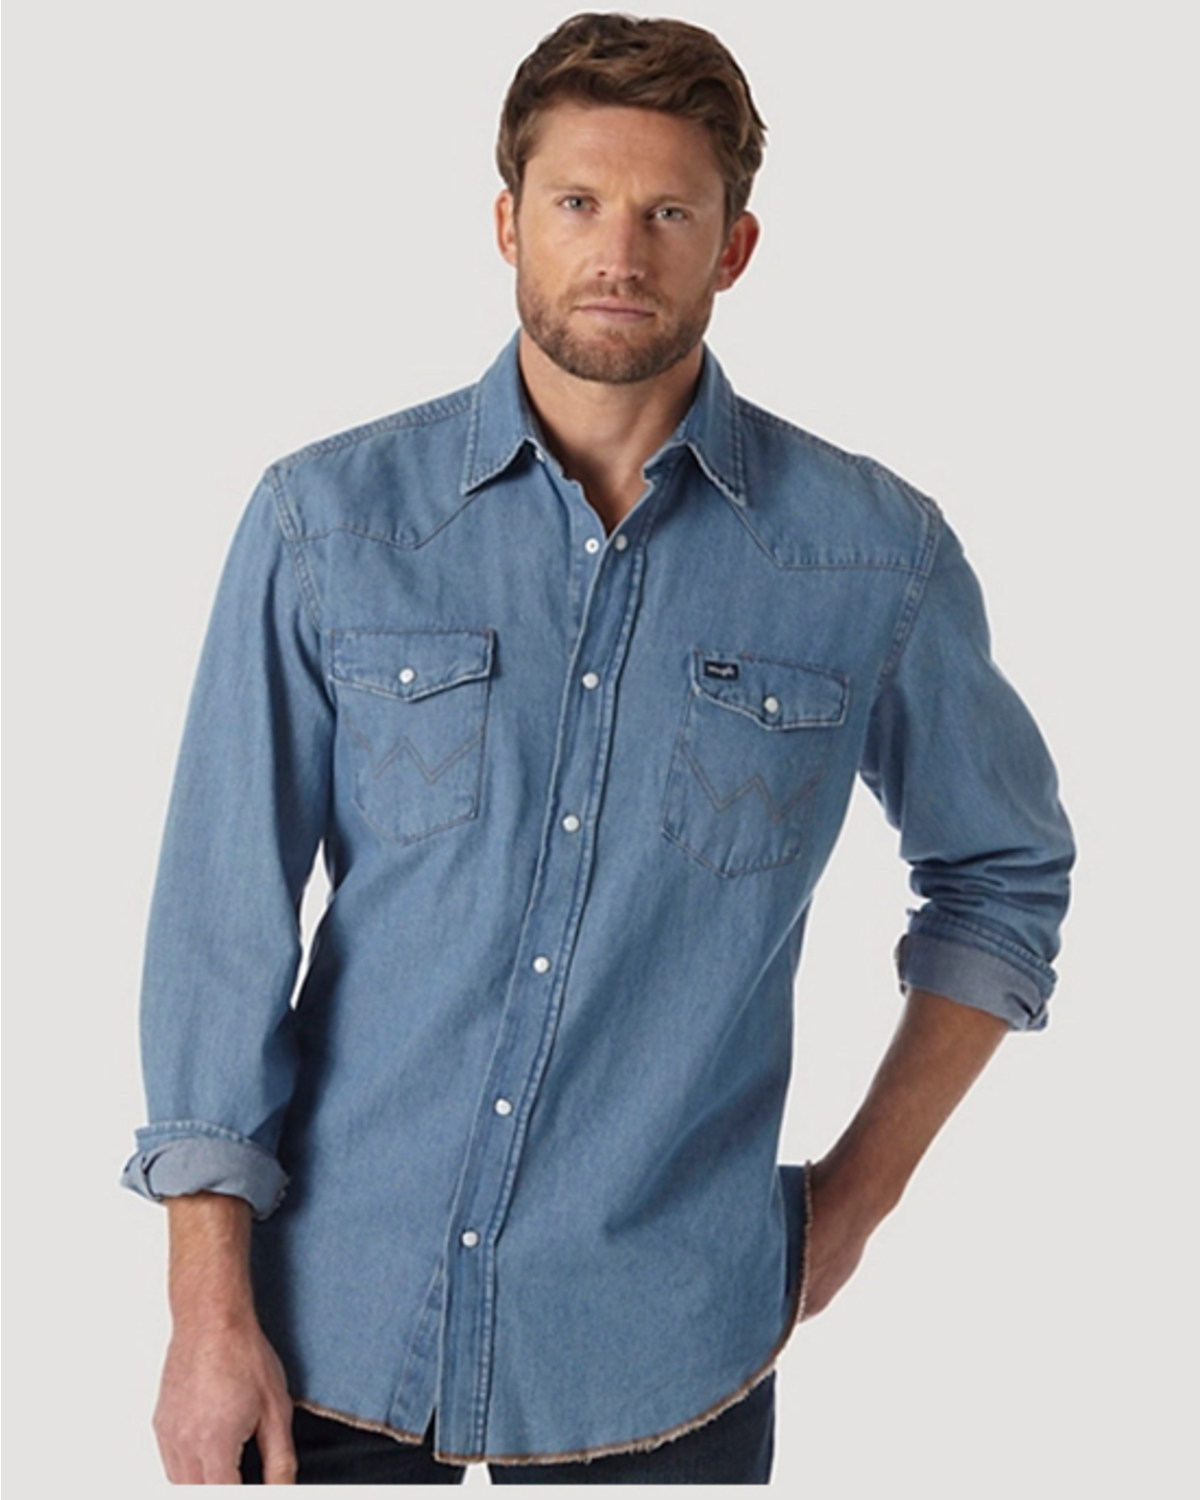 b90da07b0e Wrangler Work Shirts Cheap – EDGE Engineering and Consulting Limited